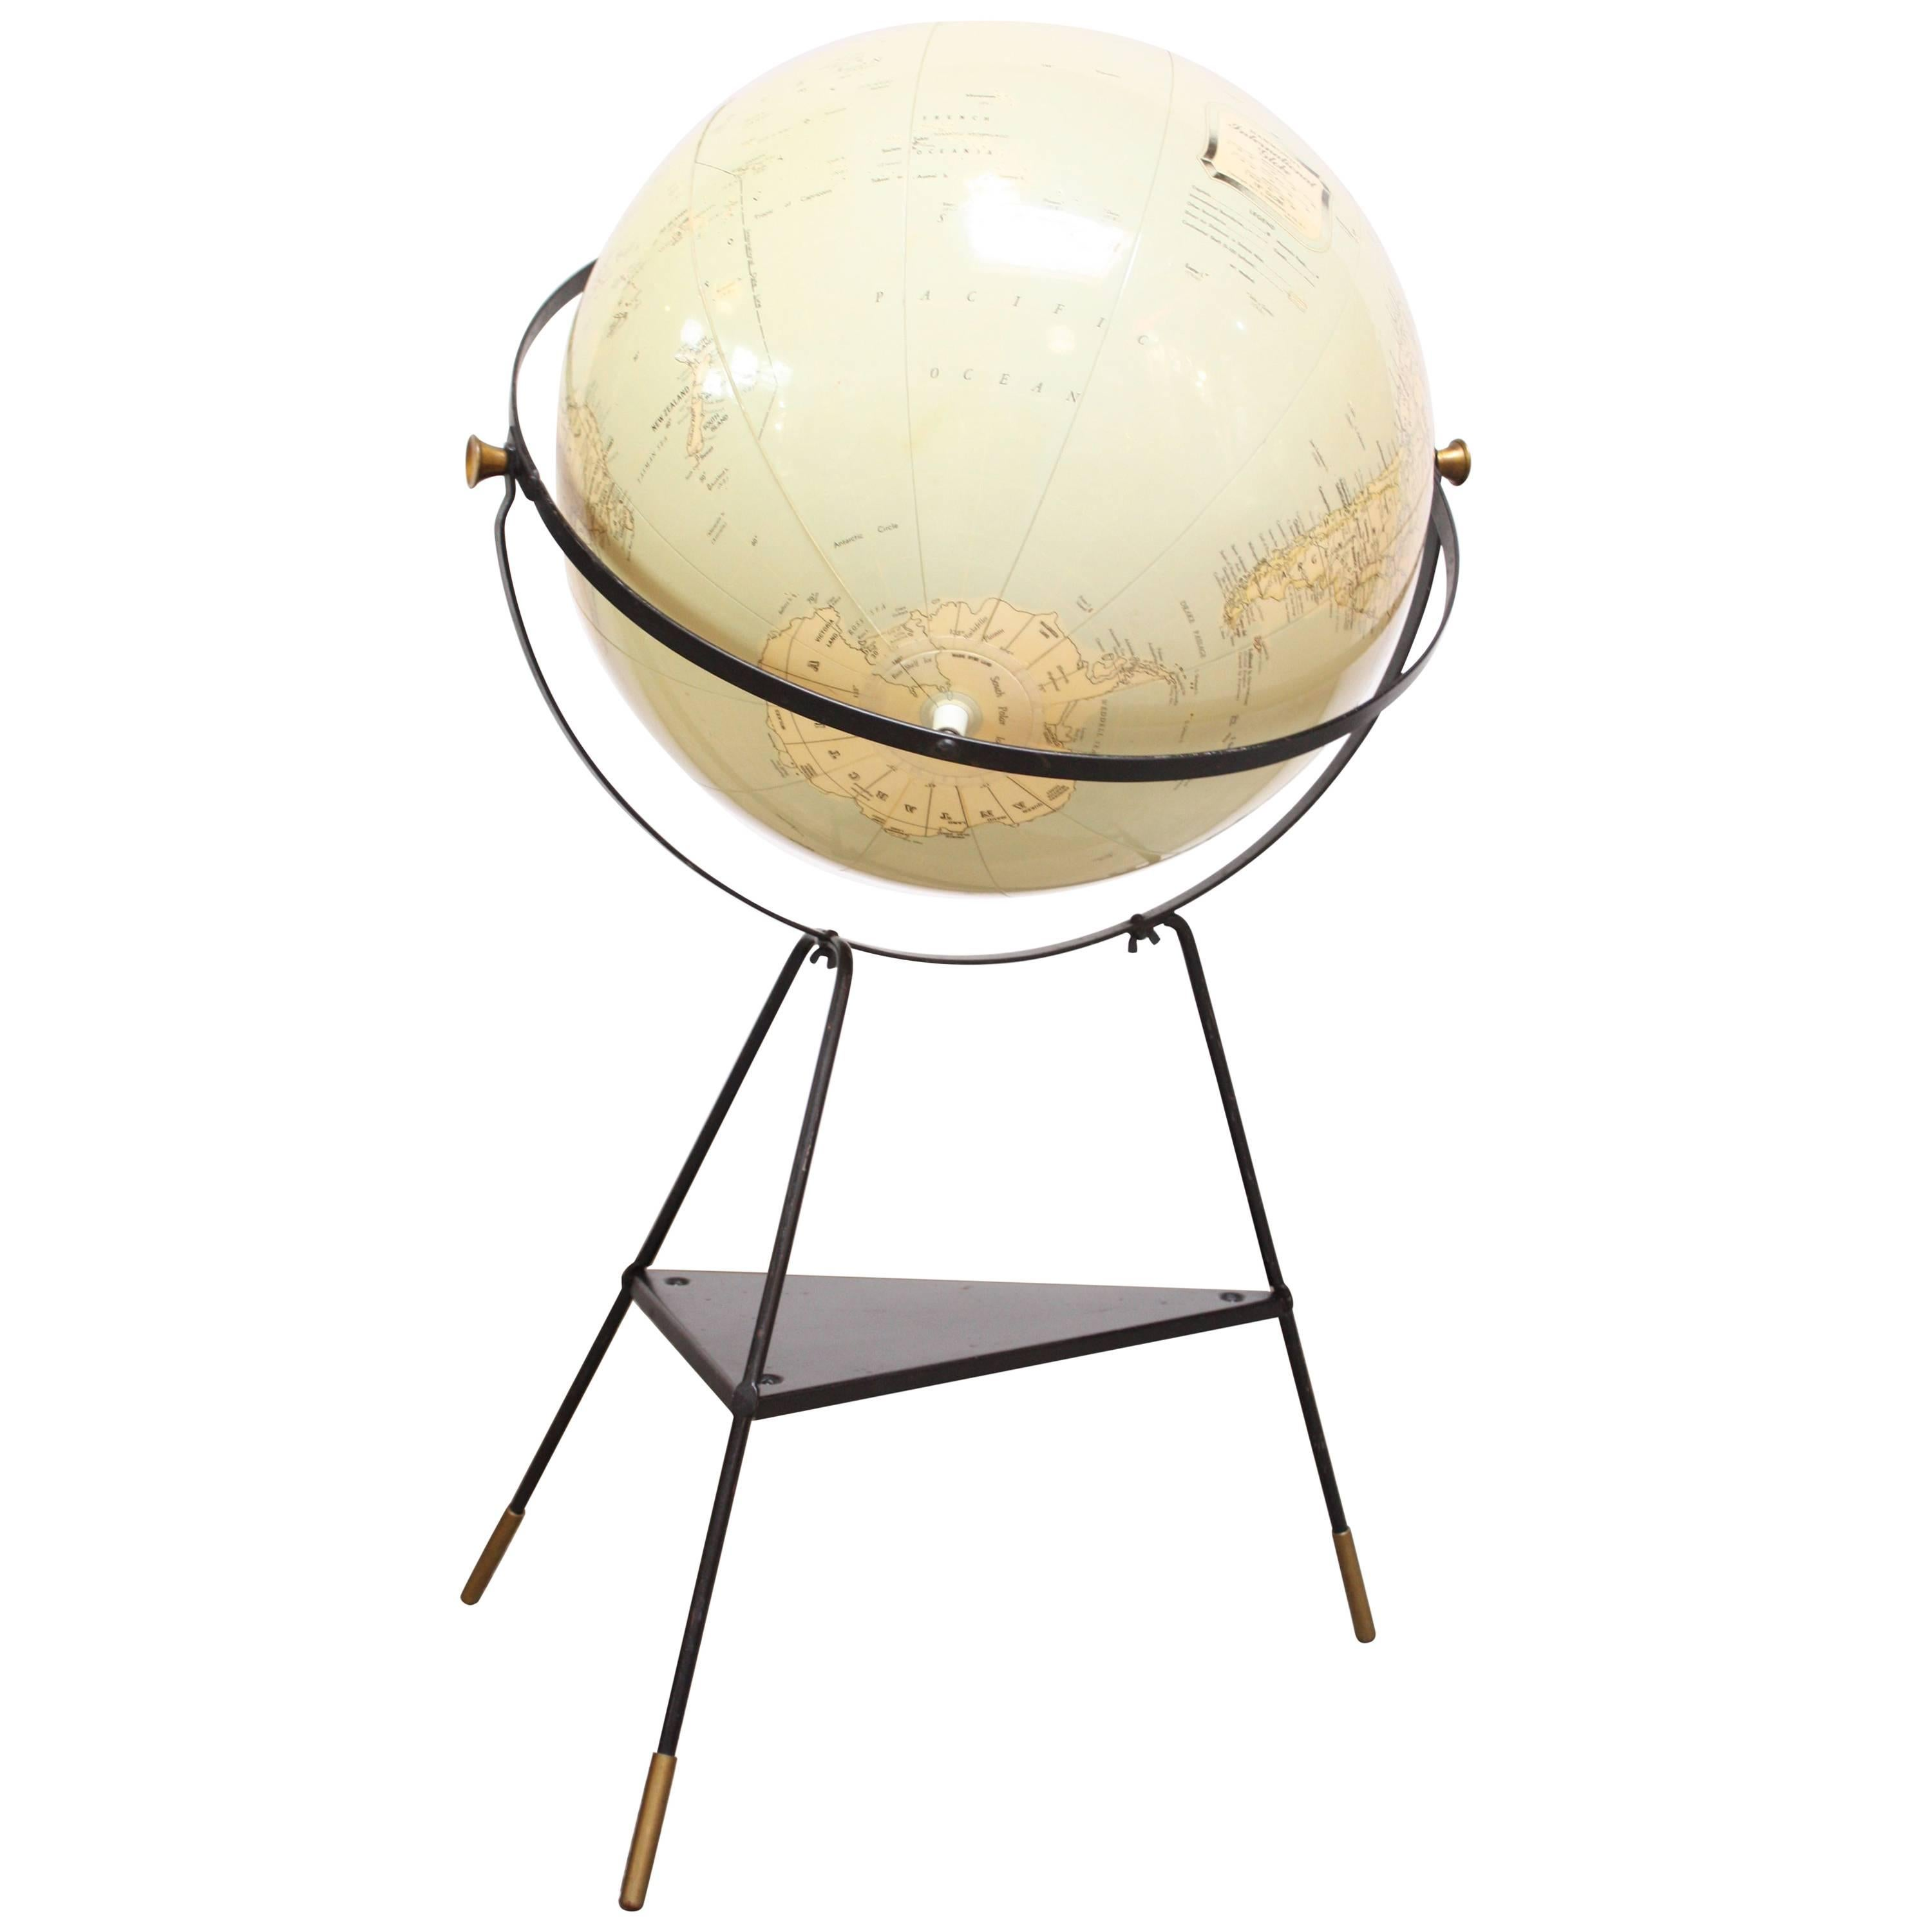 C.S. Hammond & Co. 1950s Inflatable Globe on Tripod Stand